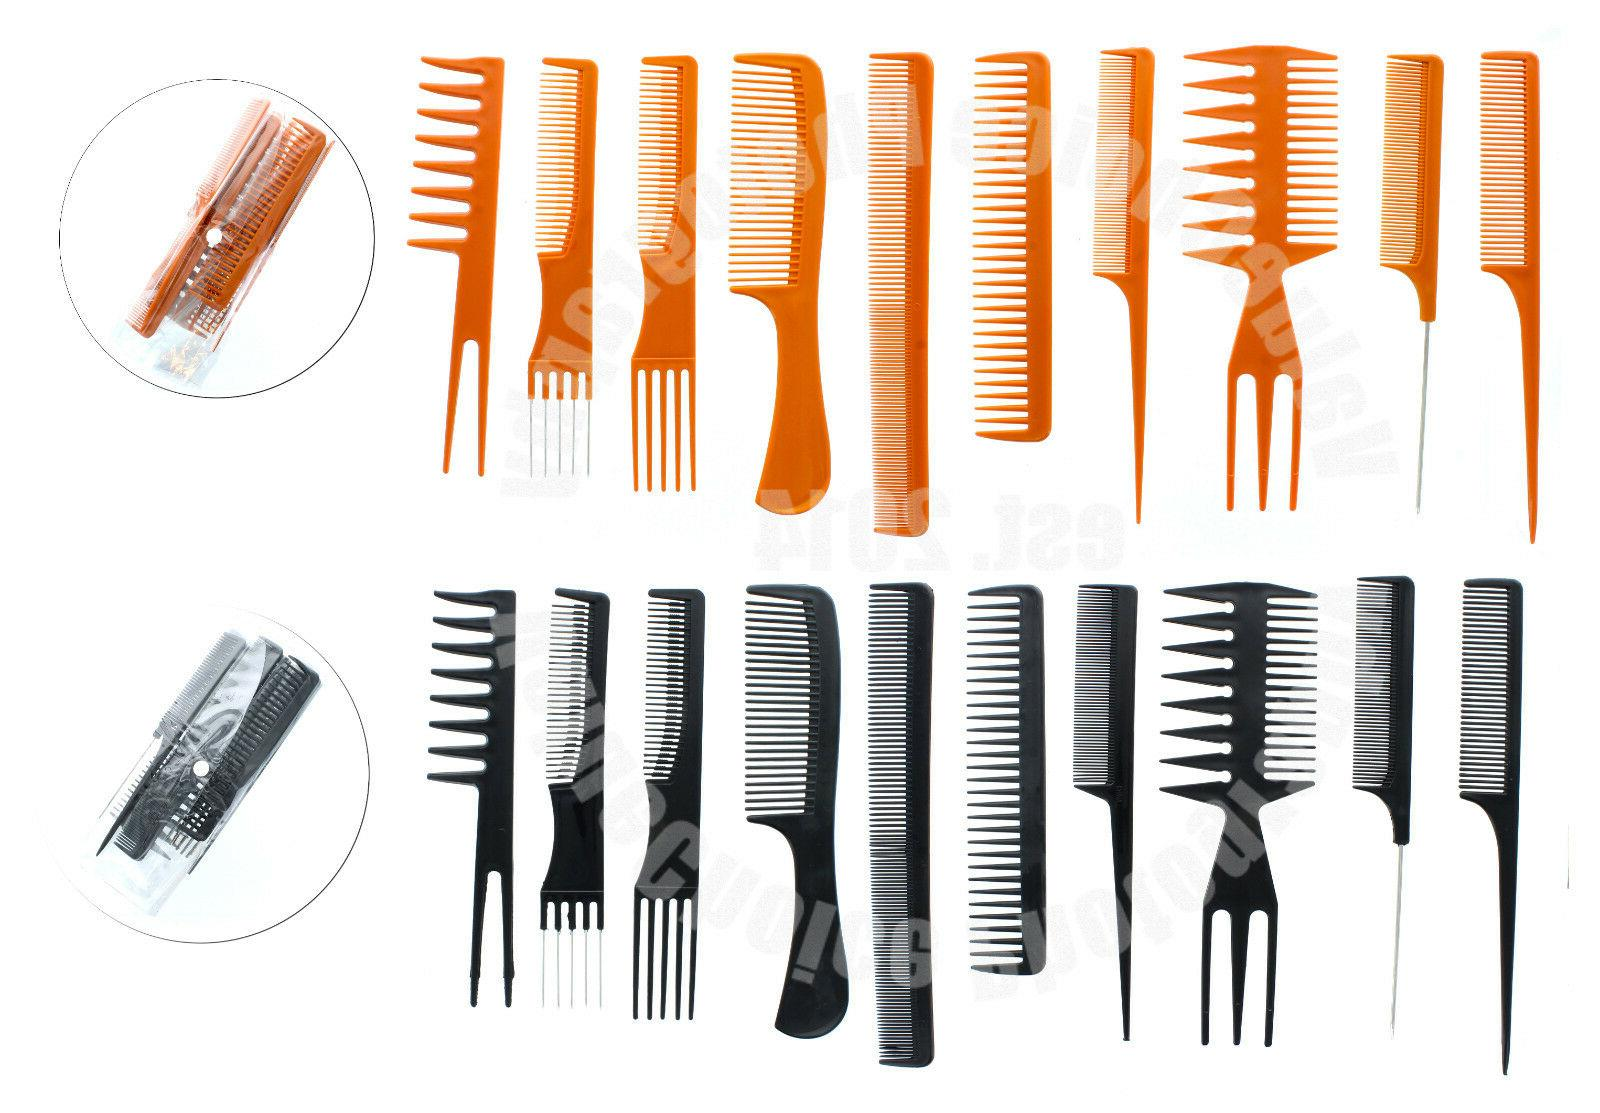 10 piece pro salon hair styling hairdressing